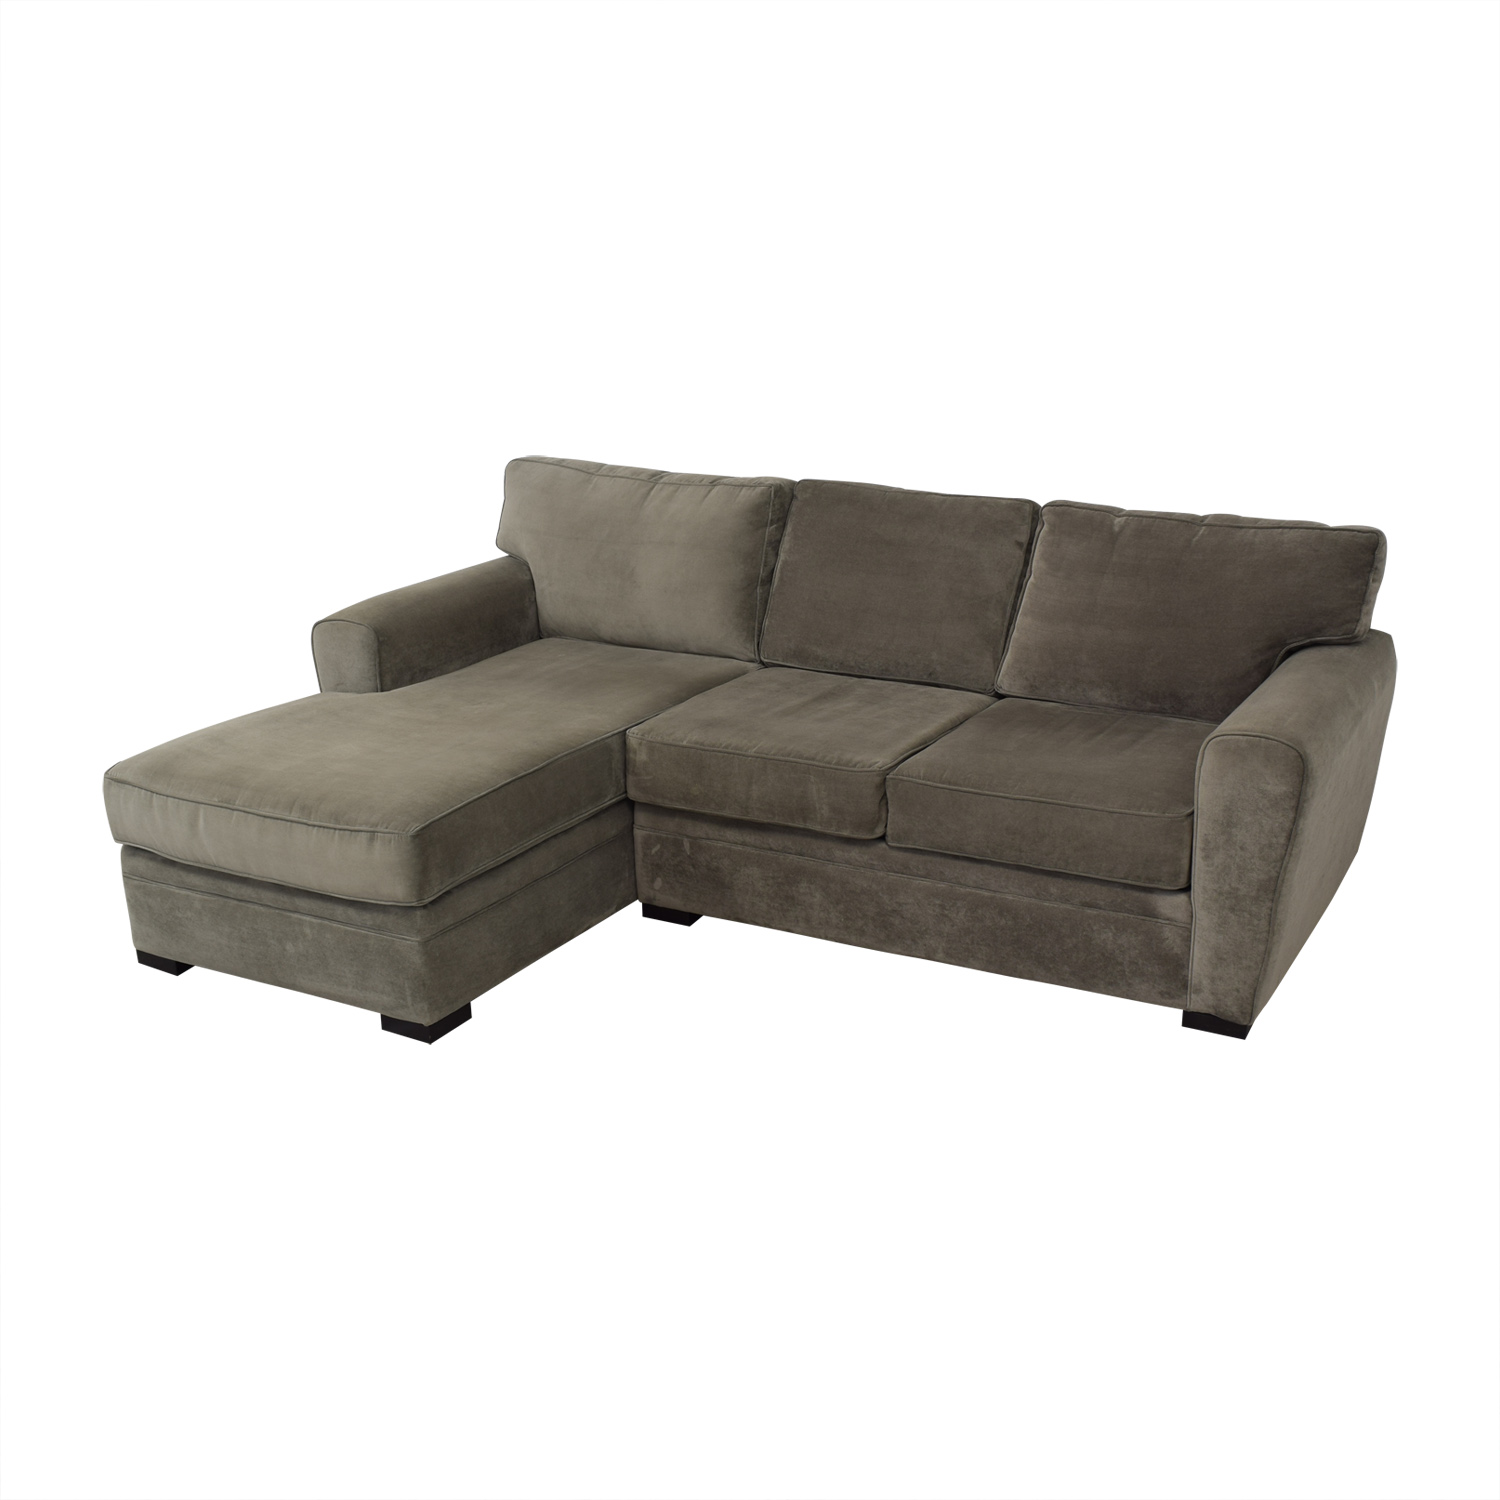 Jonathan Louis Jonathan Louis Sectional Sofa with Chaise dimensions